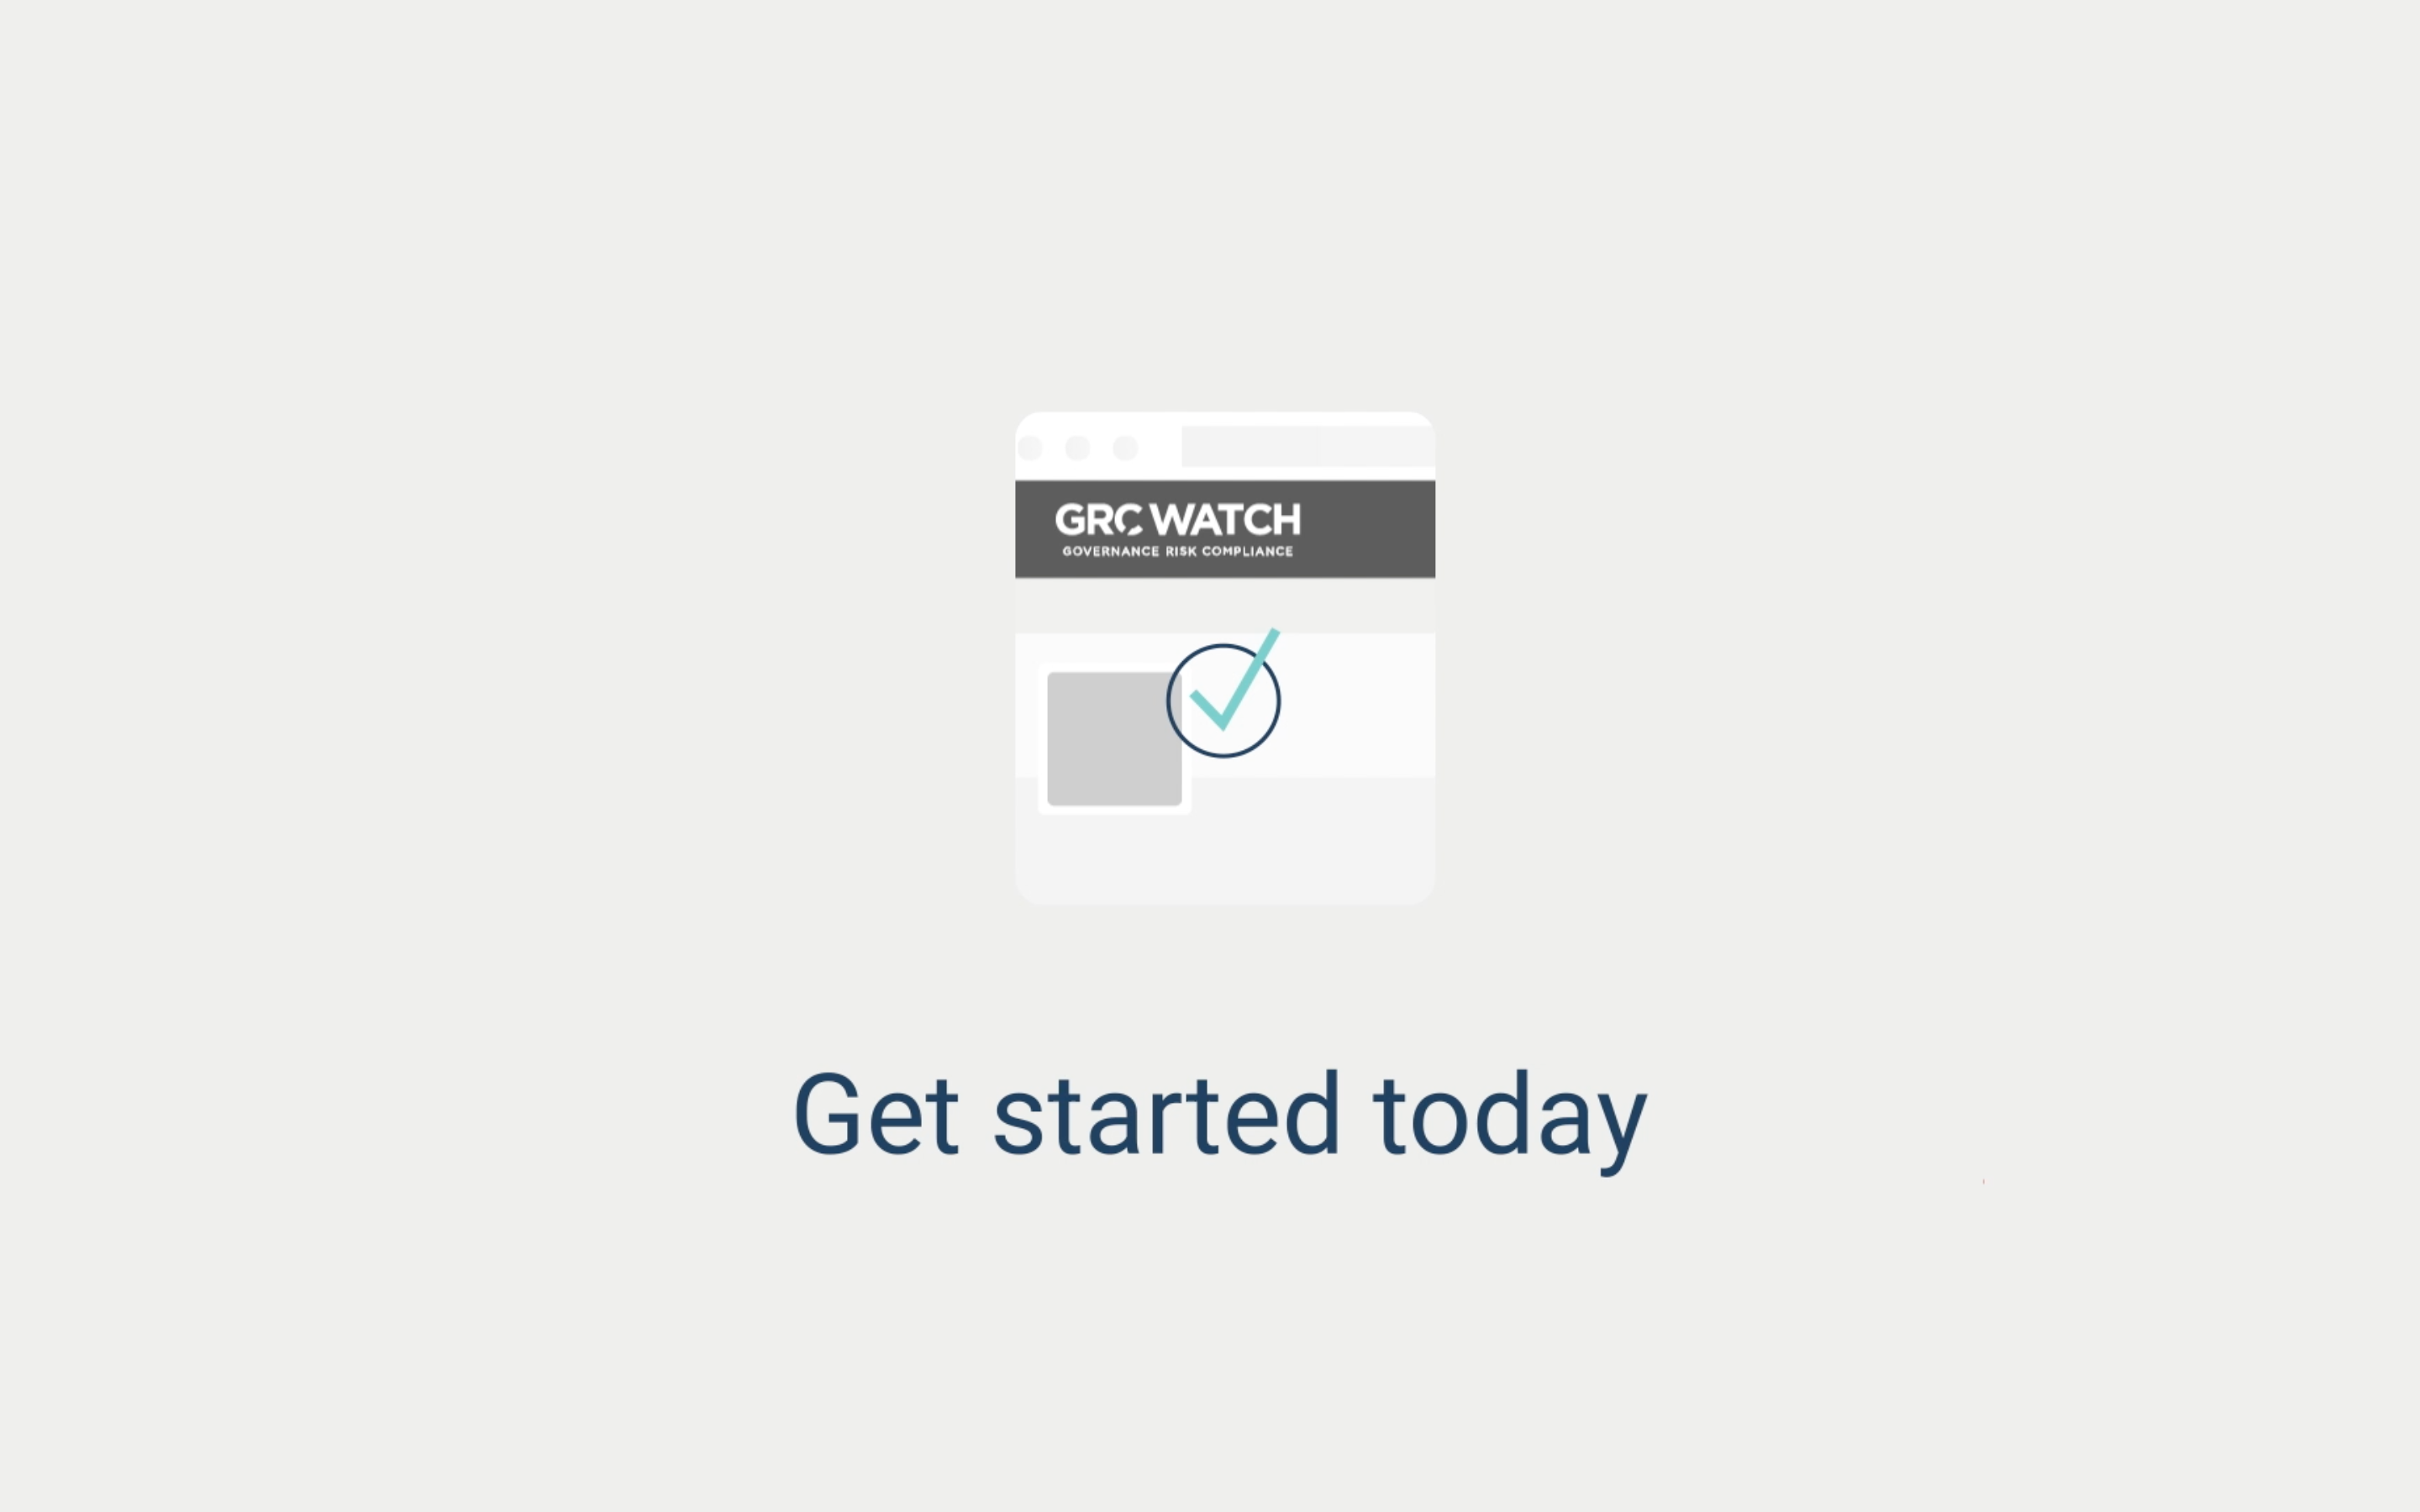 GRC Watch Explainer Video by Storisell 10